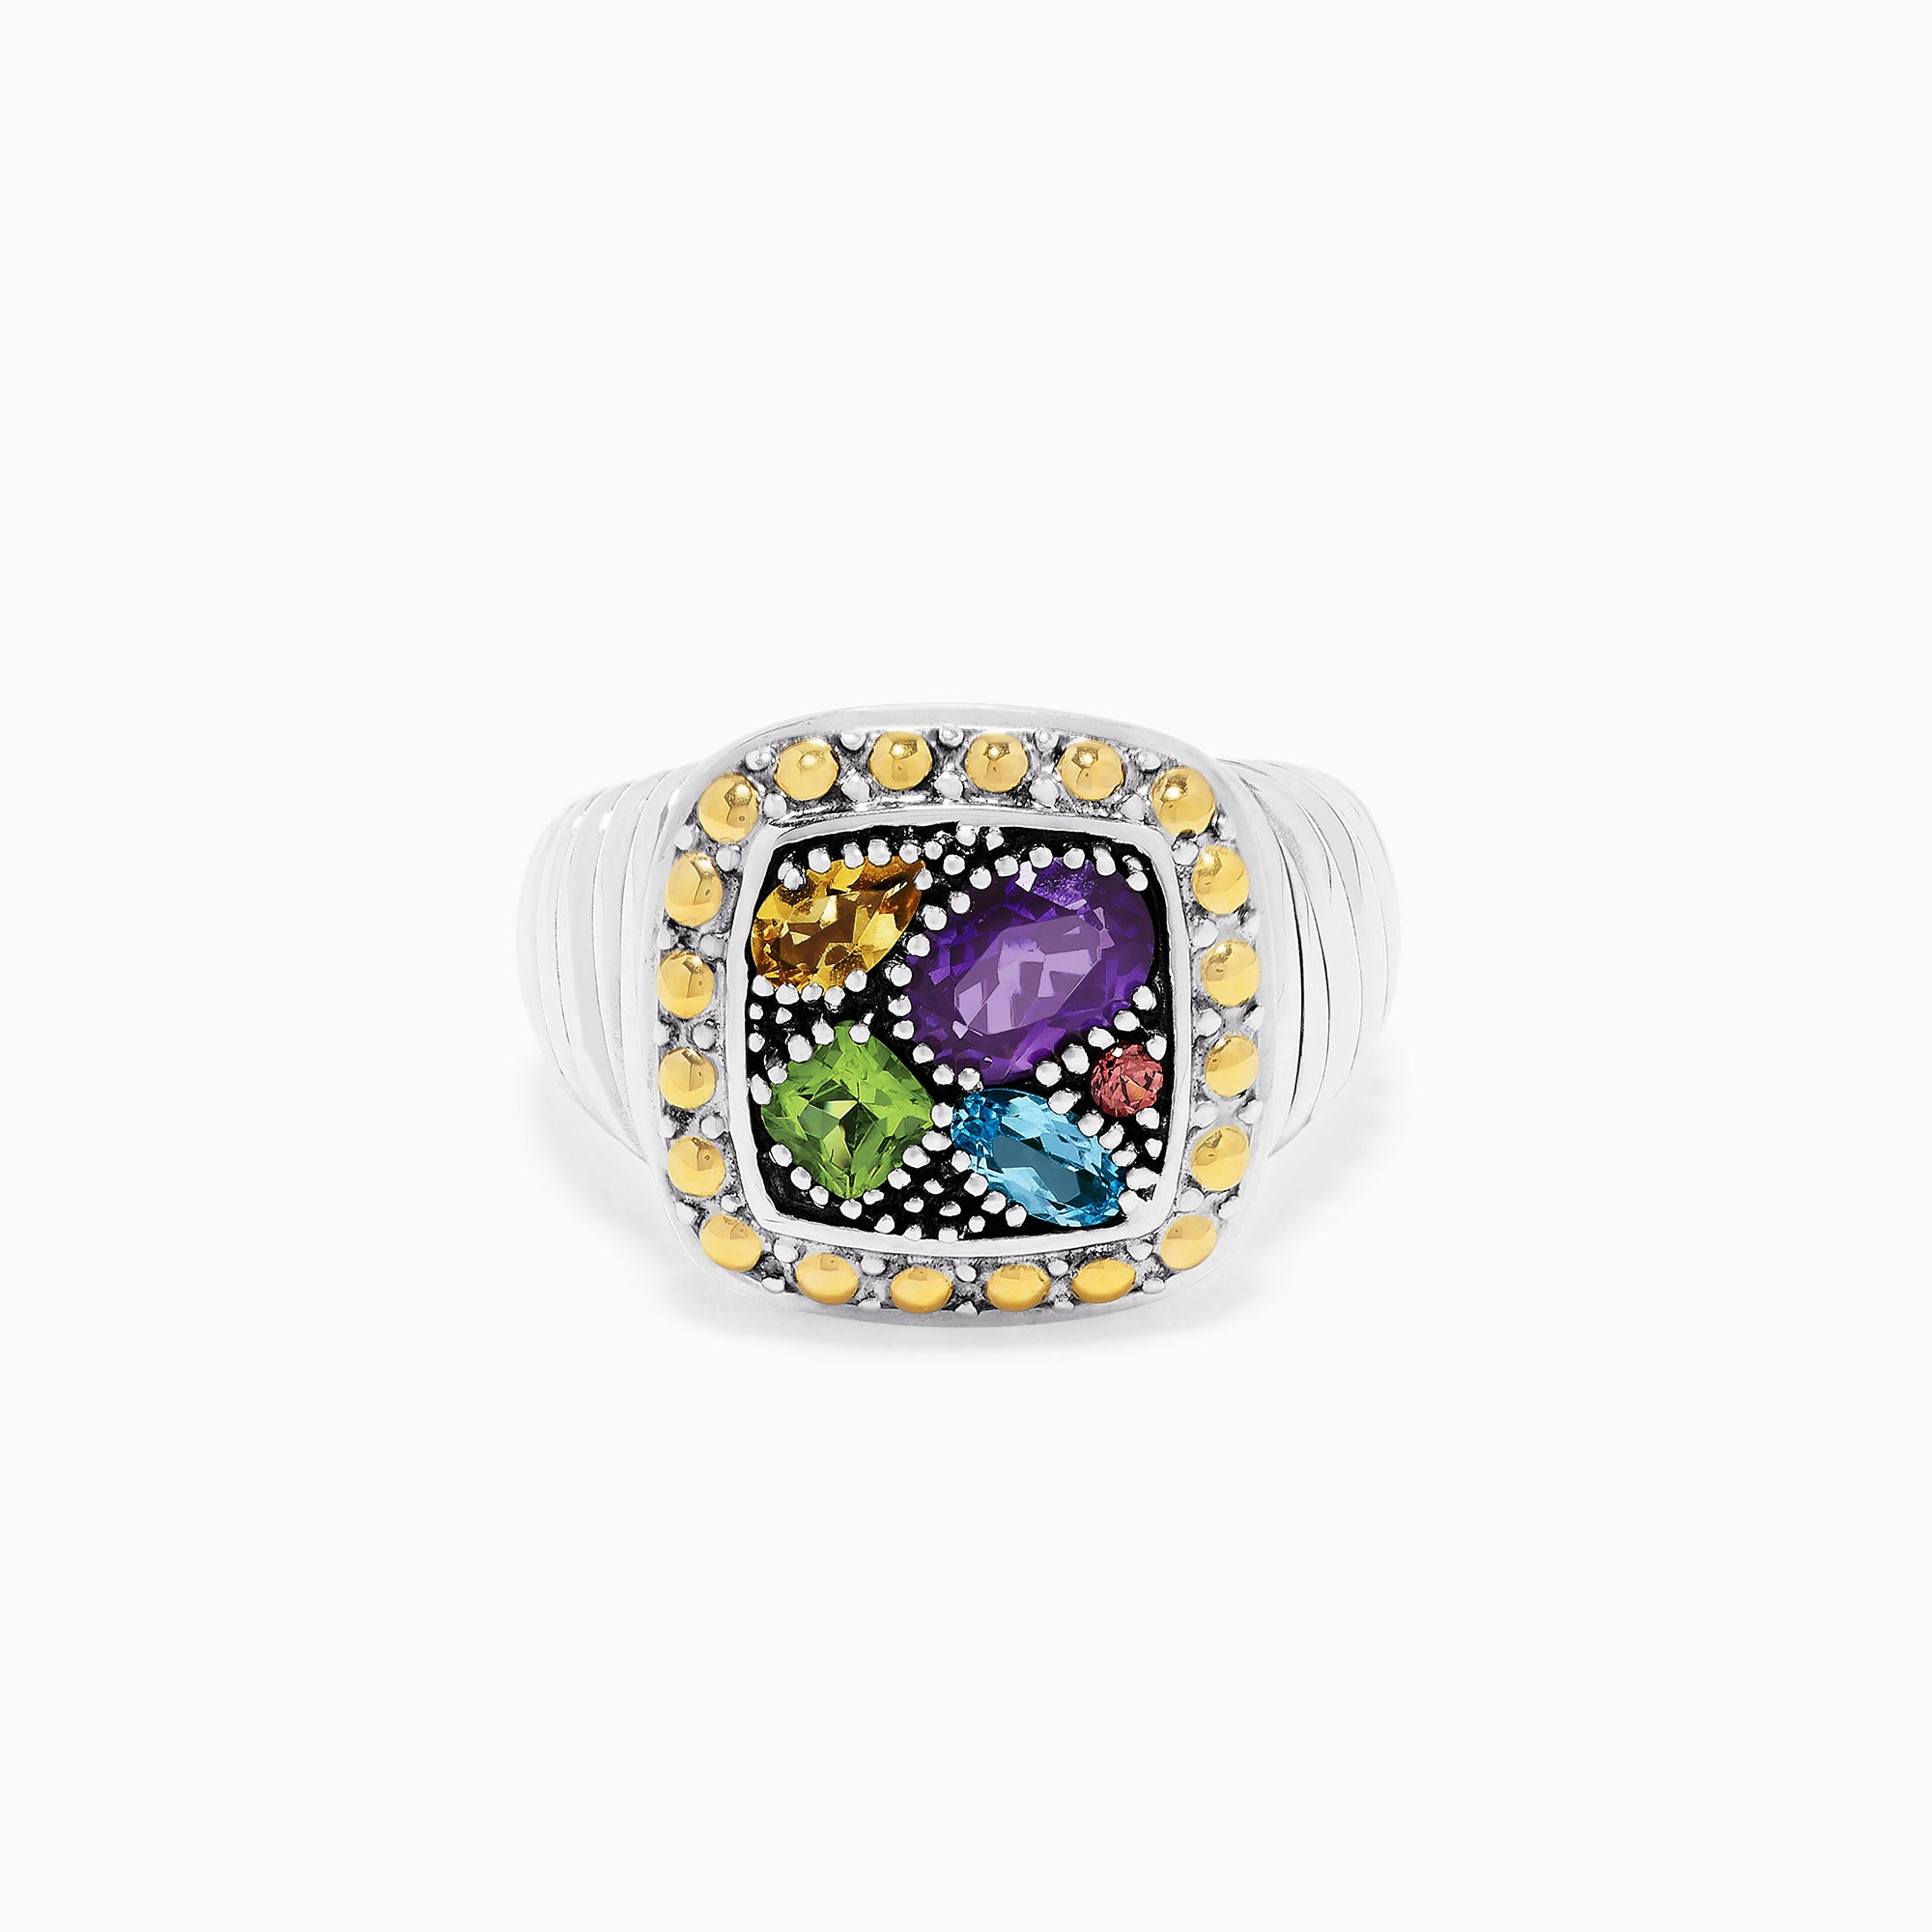 Effy 925 Sterling Silver & 18K Gold Accent Multi Gemstone Ring, 1.54 TCW